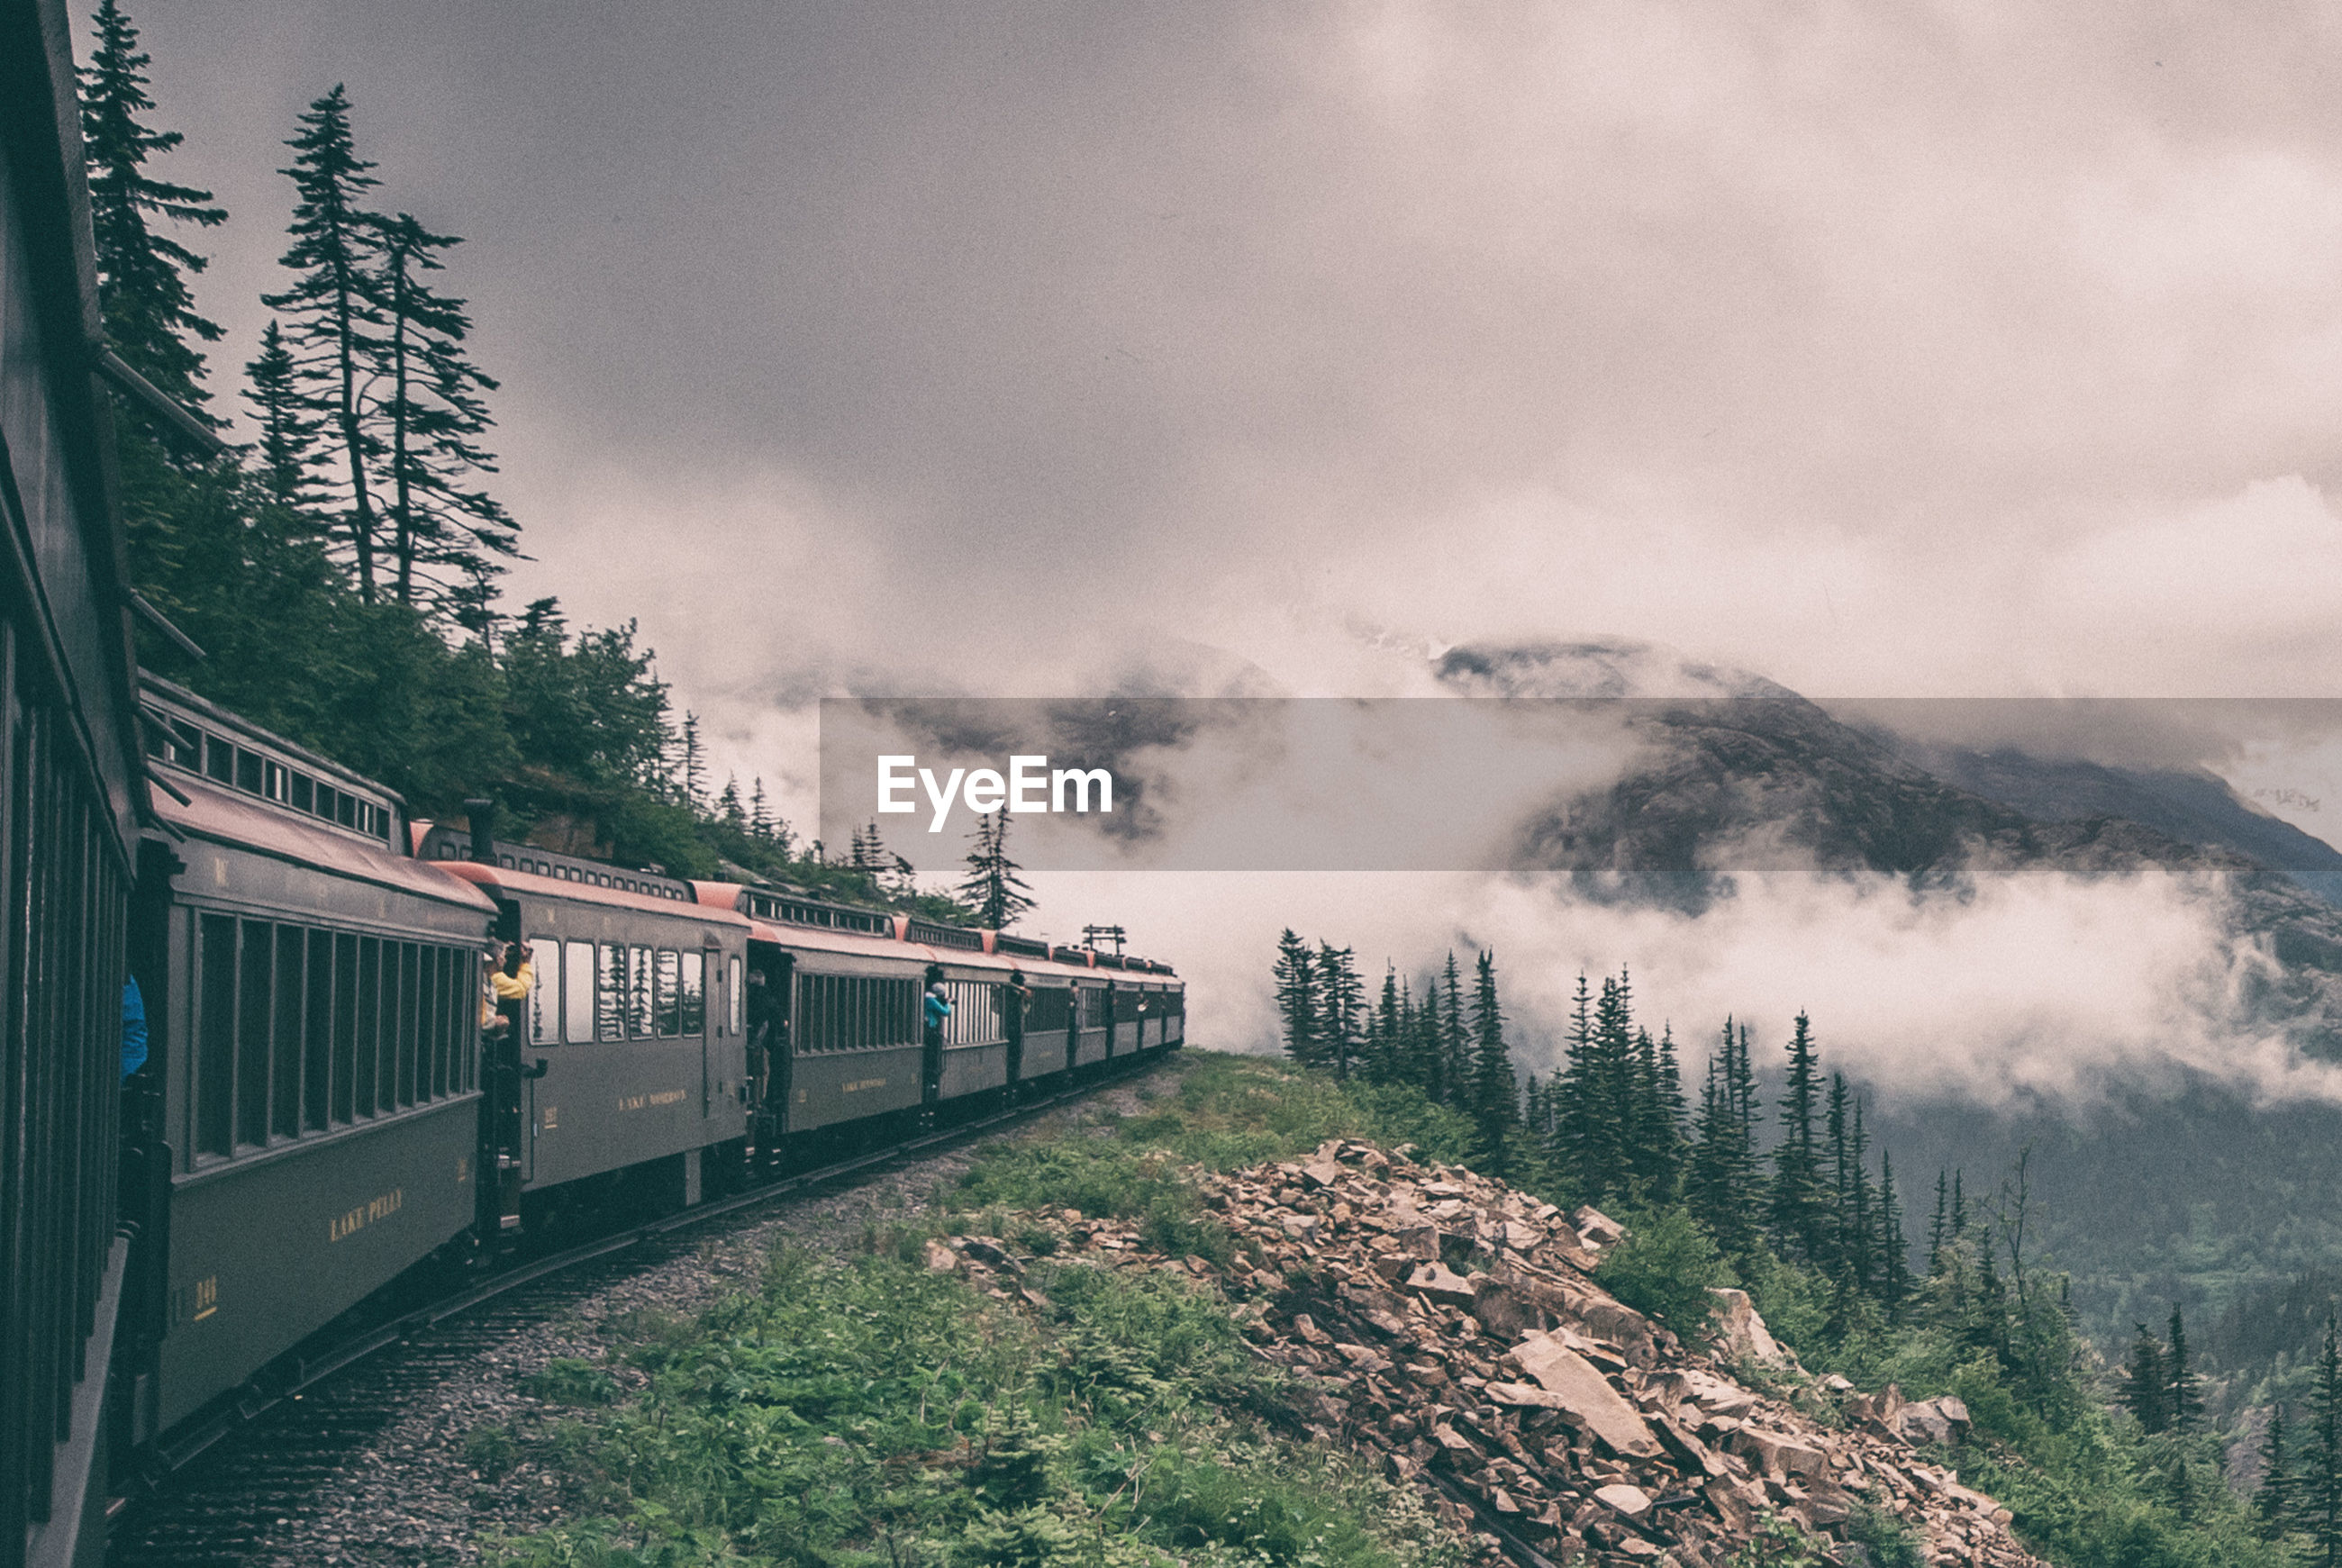 Train by mountain during foggy weather